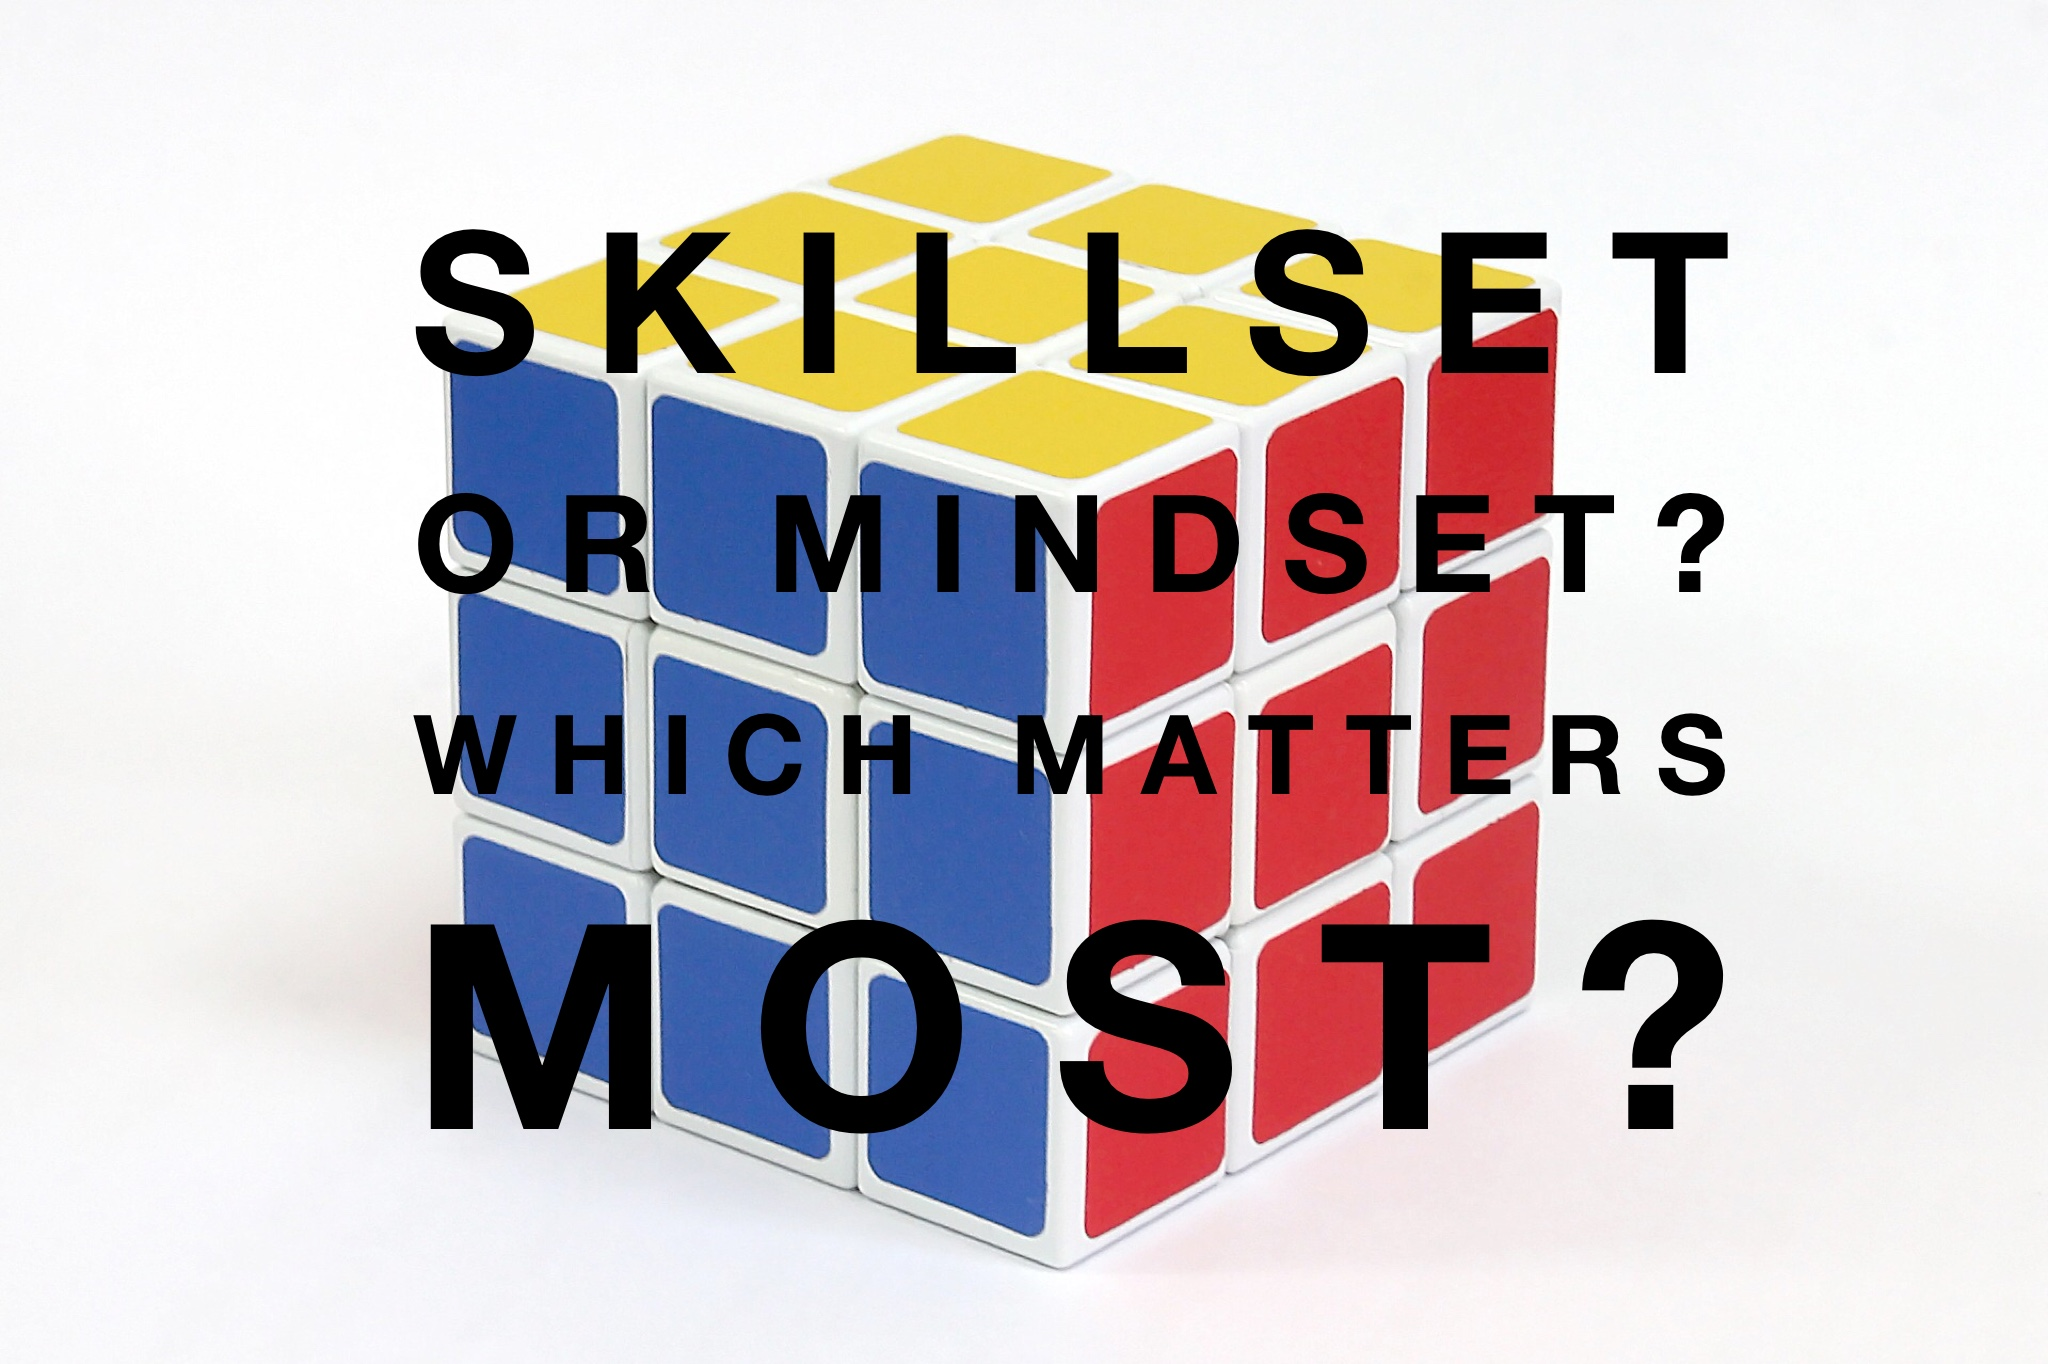 Skillset or Mindset? Which matters most?